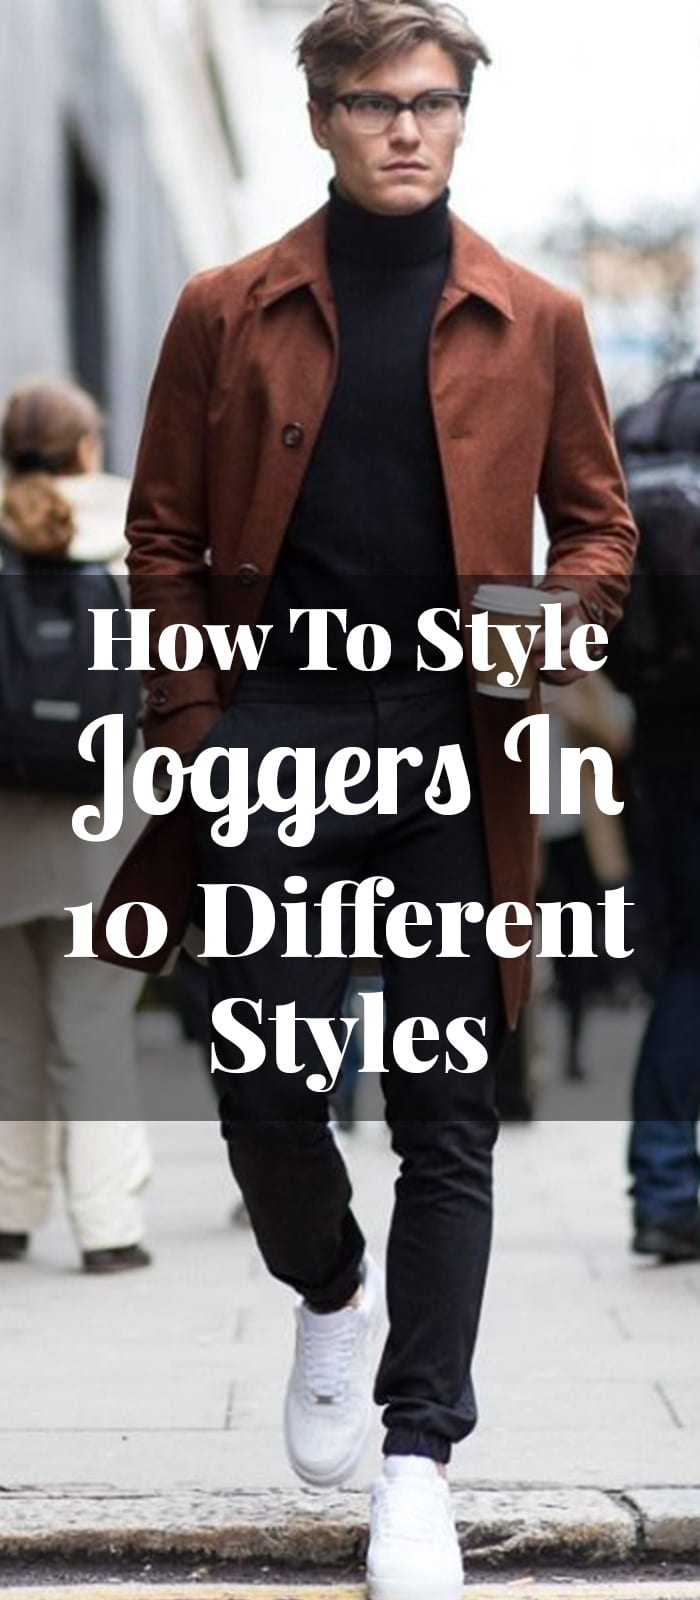 How To Style Joggers In 10 Different Styles